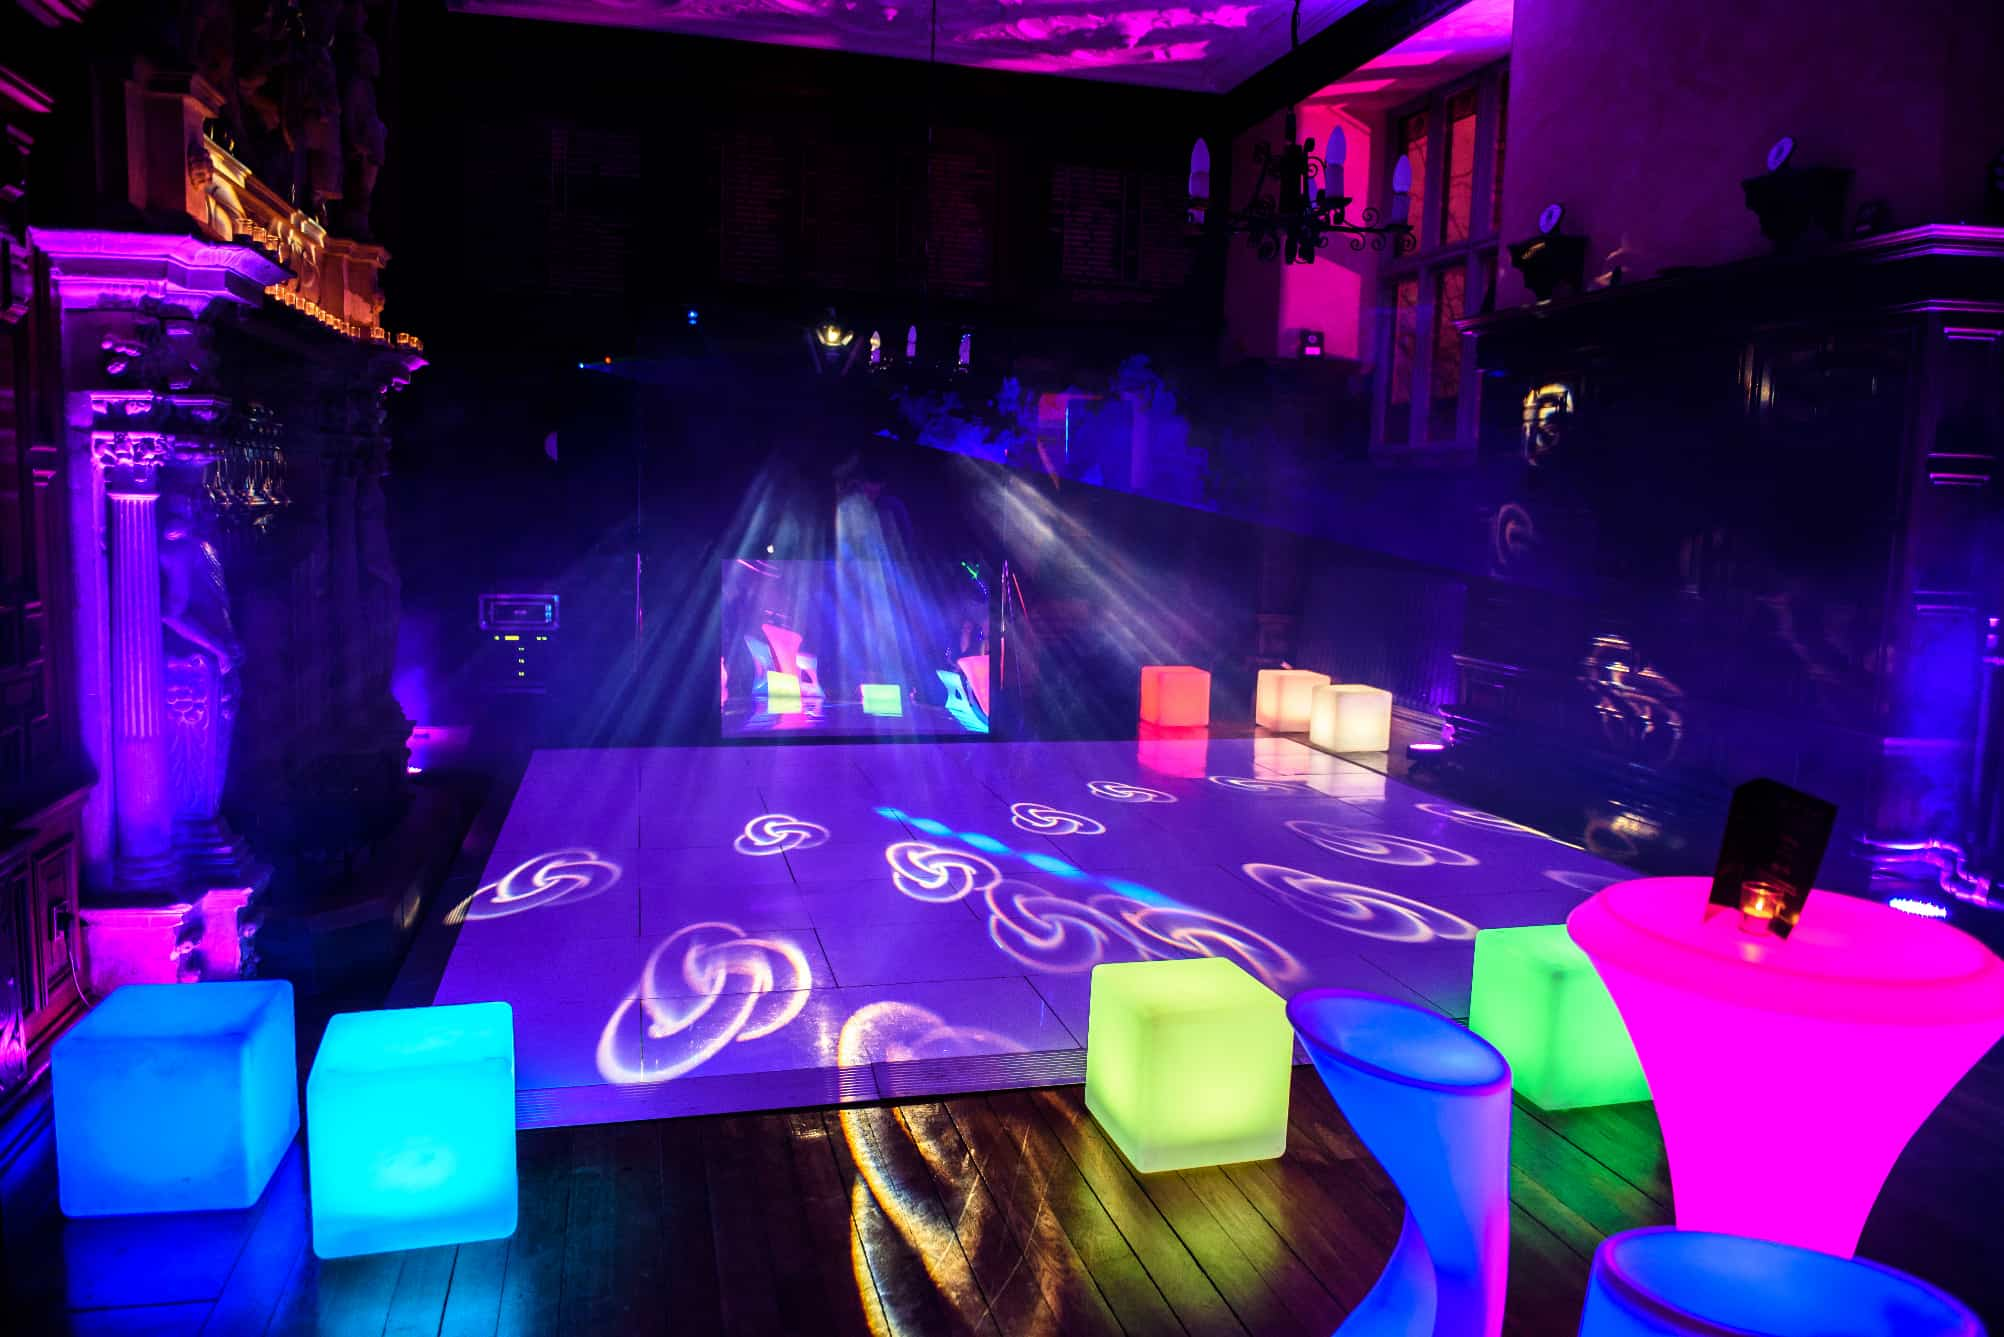 LED furniture and dance floor